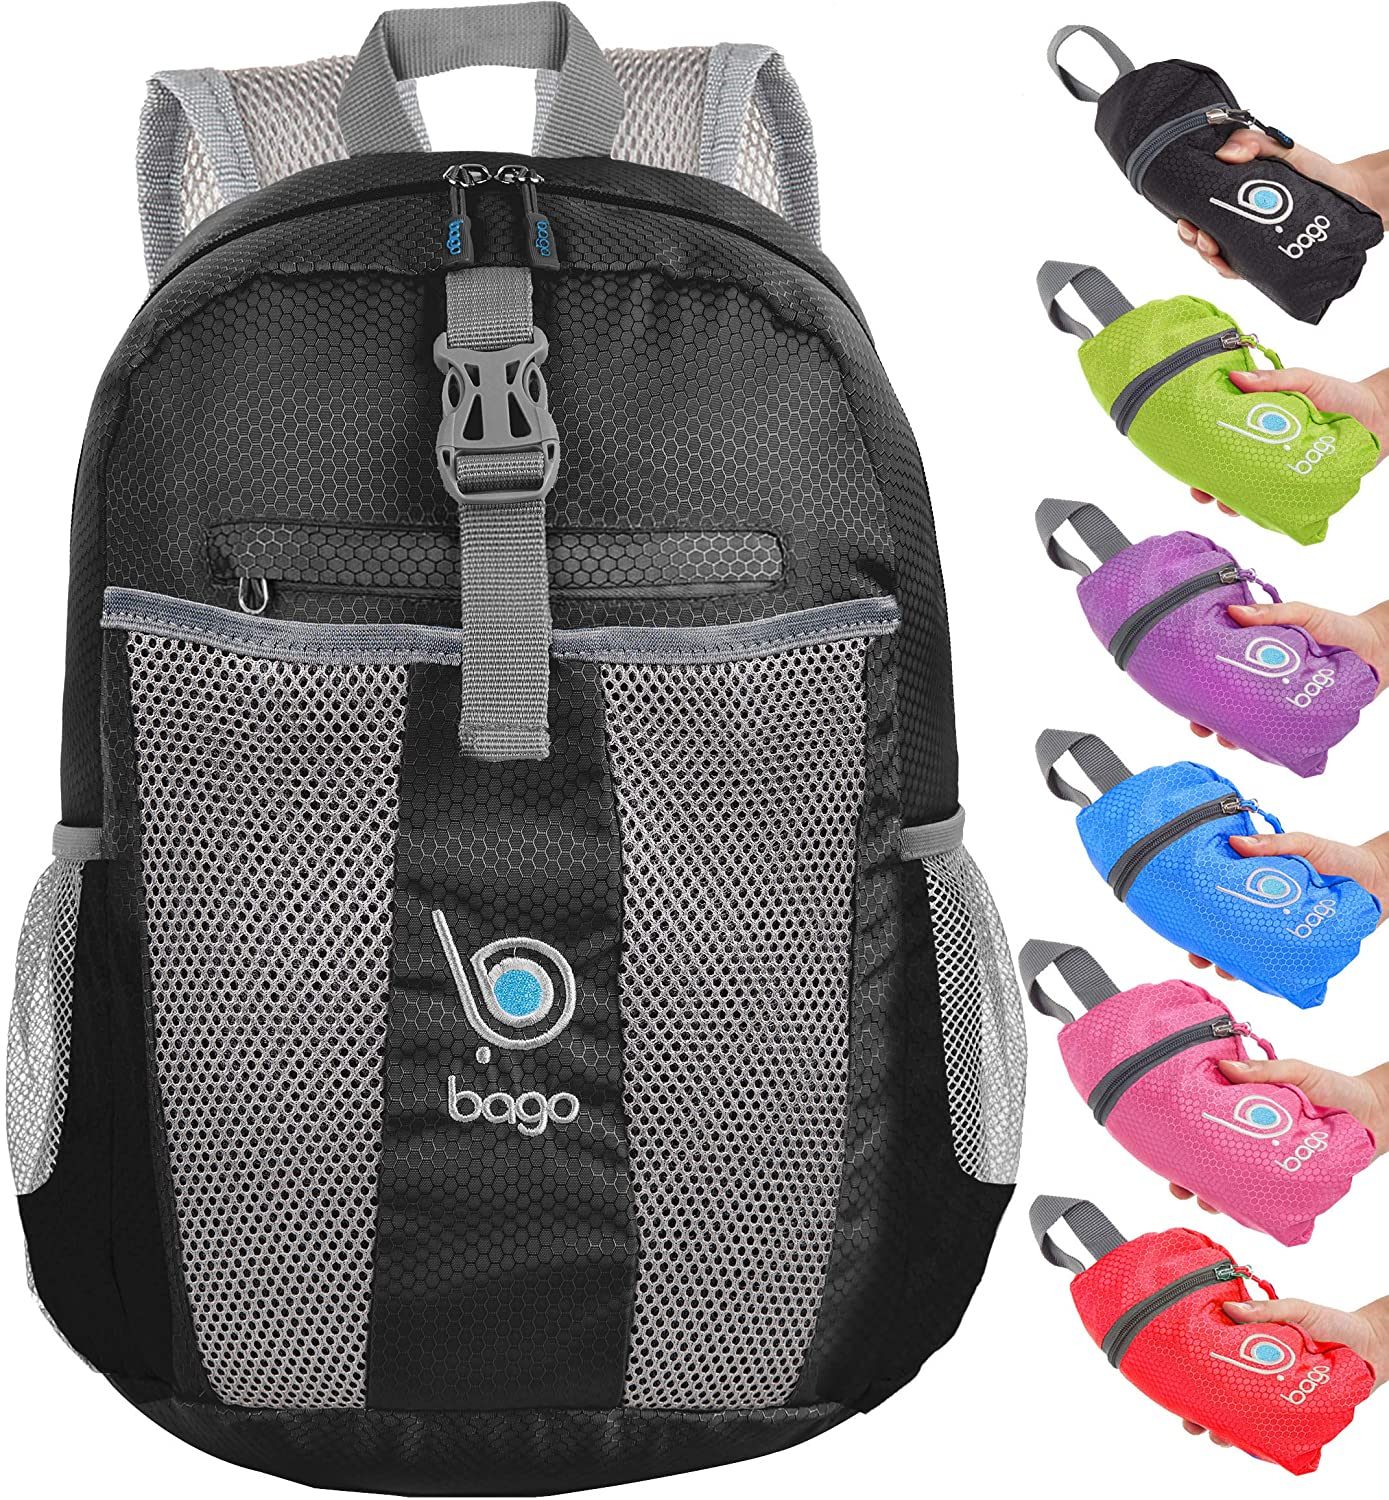 eb9b07ea7 Amazon.com  bago 25L Lightweight Packable Backpack - Water Resistant Travel  and Hiking Daypack - Foldable and Handy for Camping Outdoor Sports  Sports    ...